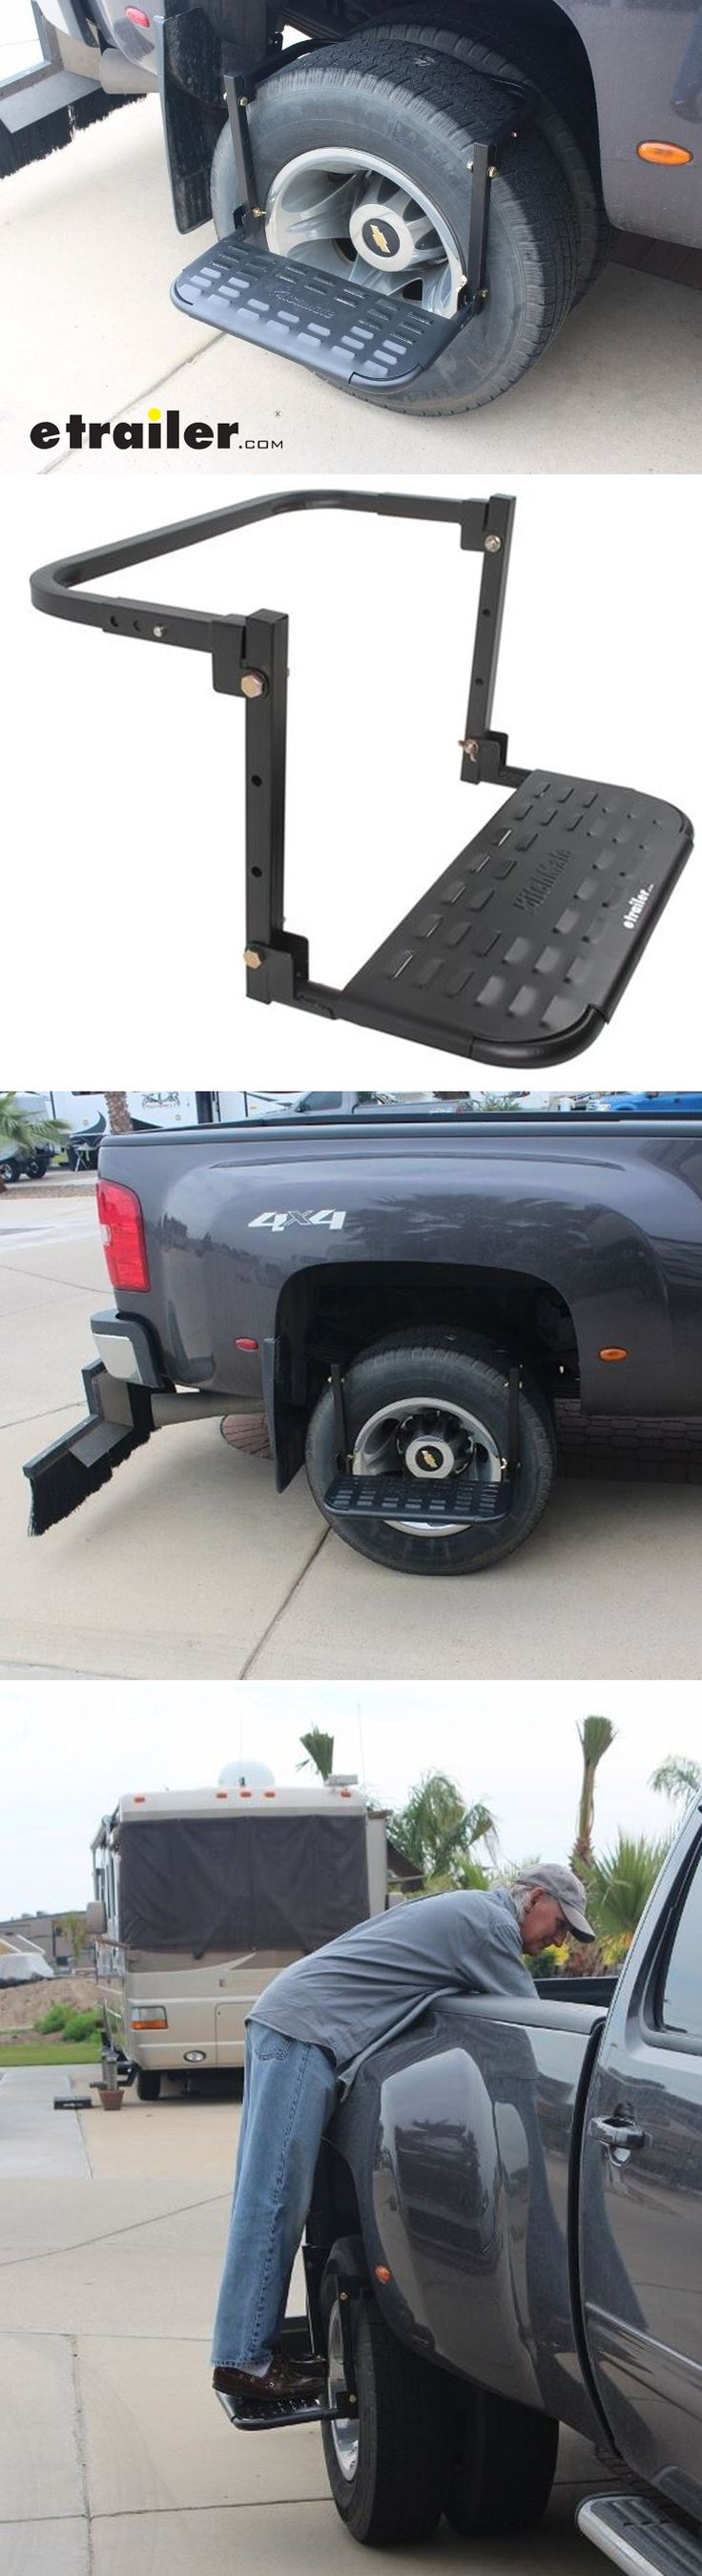 Easily reach your vehicle's roof with this unique, removable step. Simply place the arms over your tire and adjust to fit, and you'll have a stable platform that supports up to 400 lbs. Perfect compact vehicle accessory to keep on hand when you need a step up!